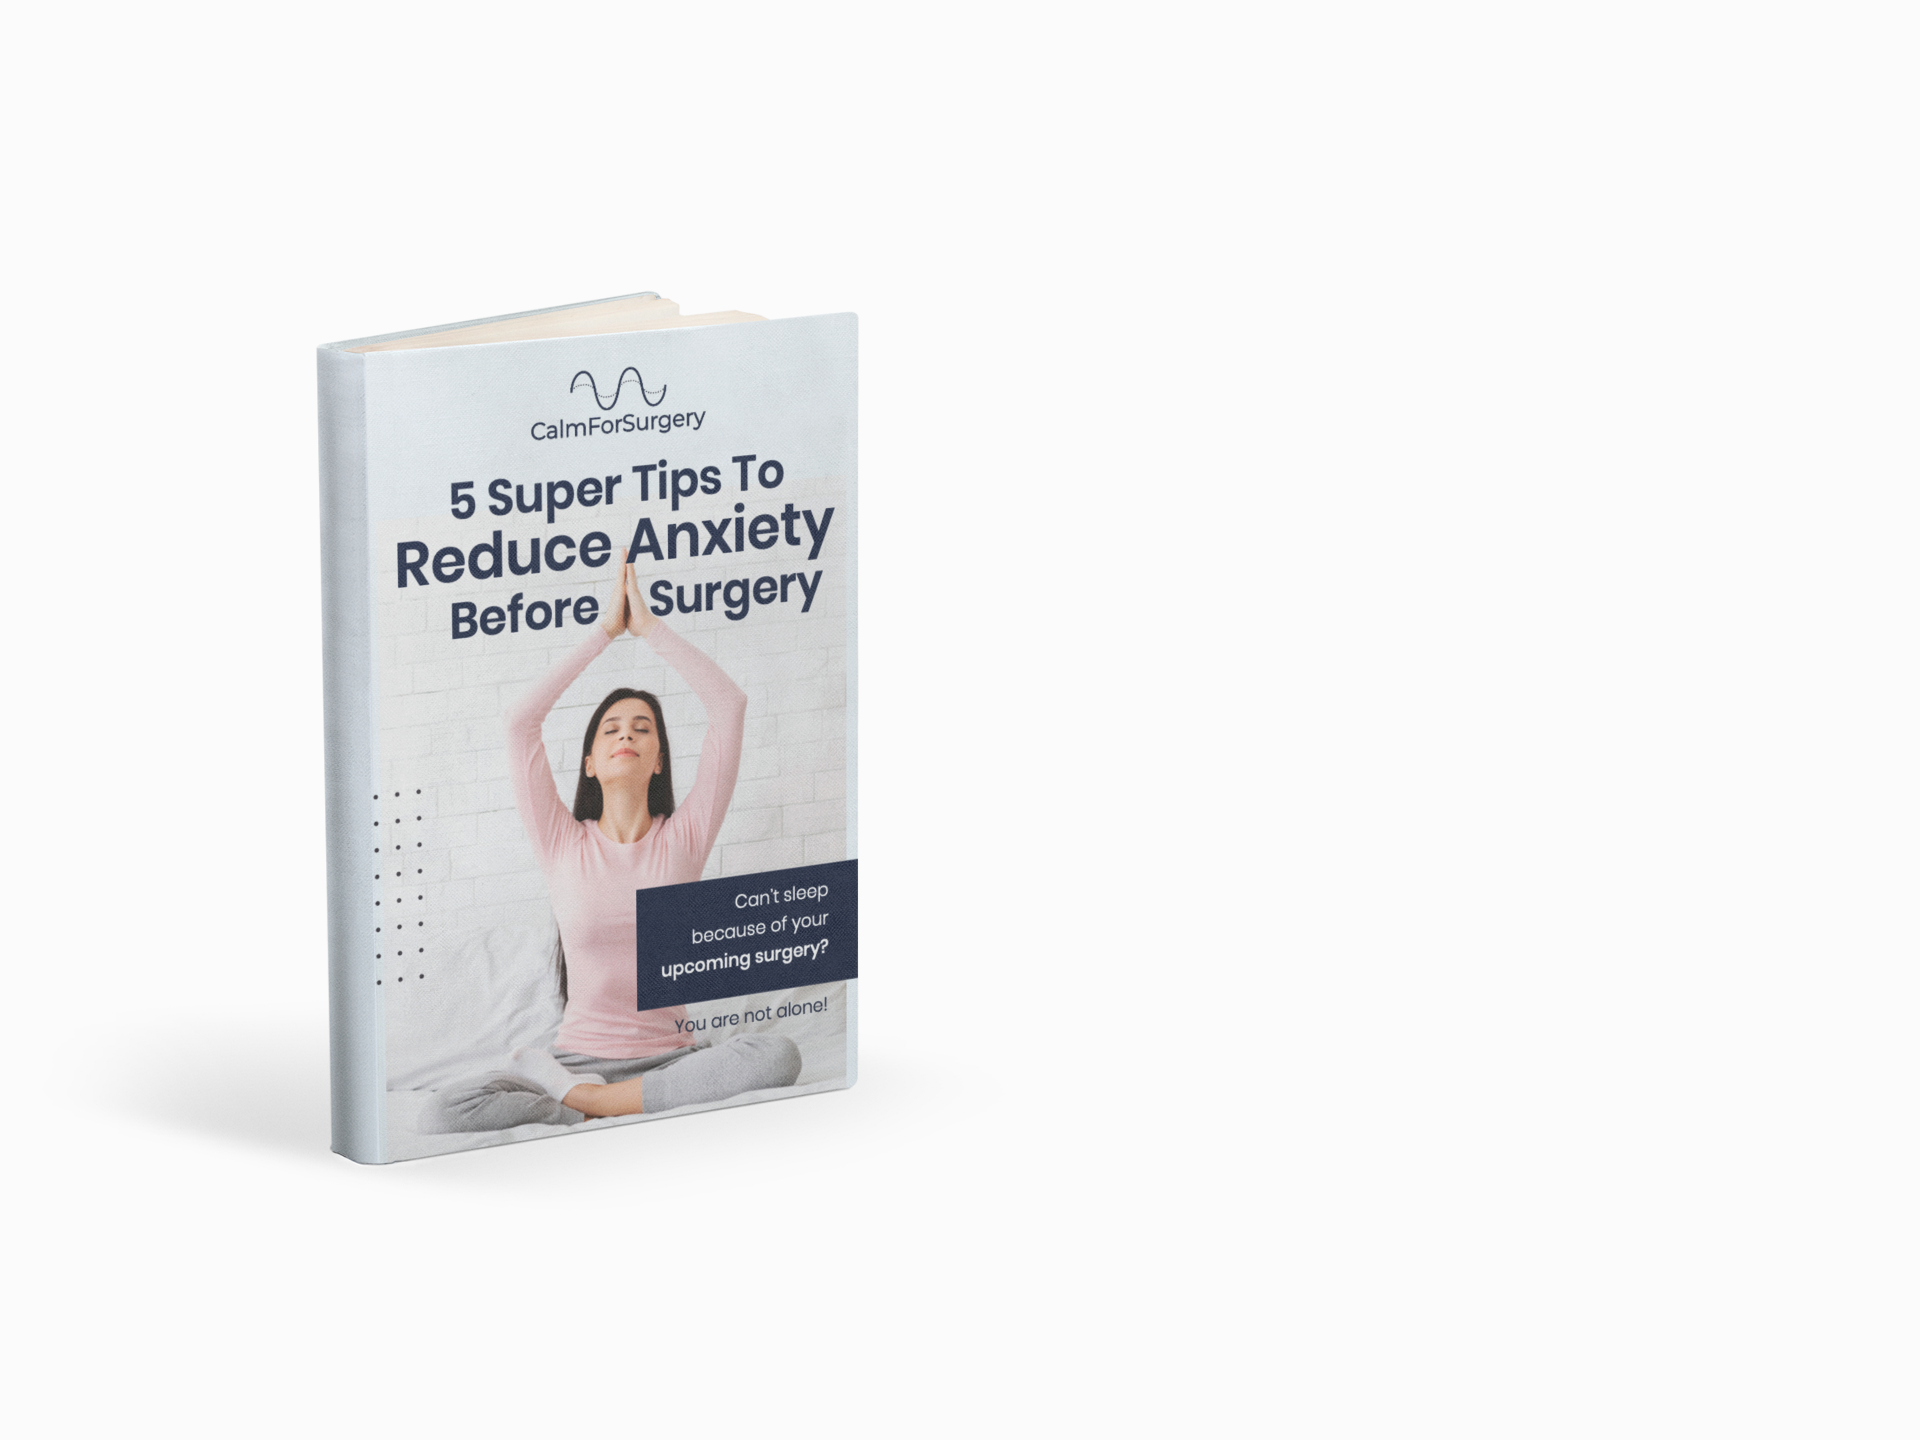 5 Super Tips To Reduce Anxiety Before Surgery